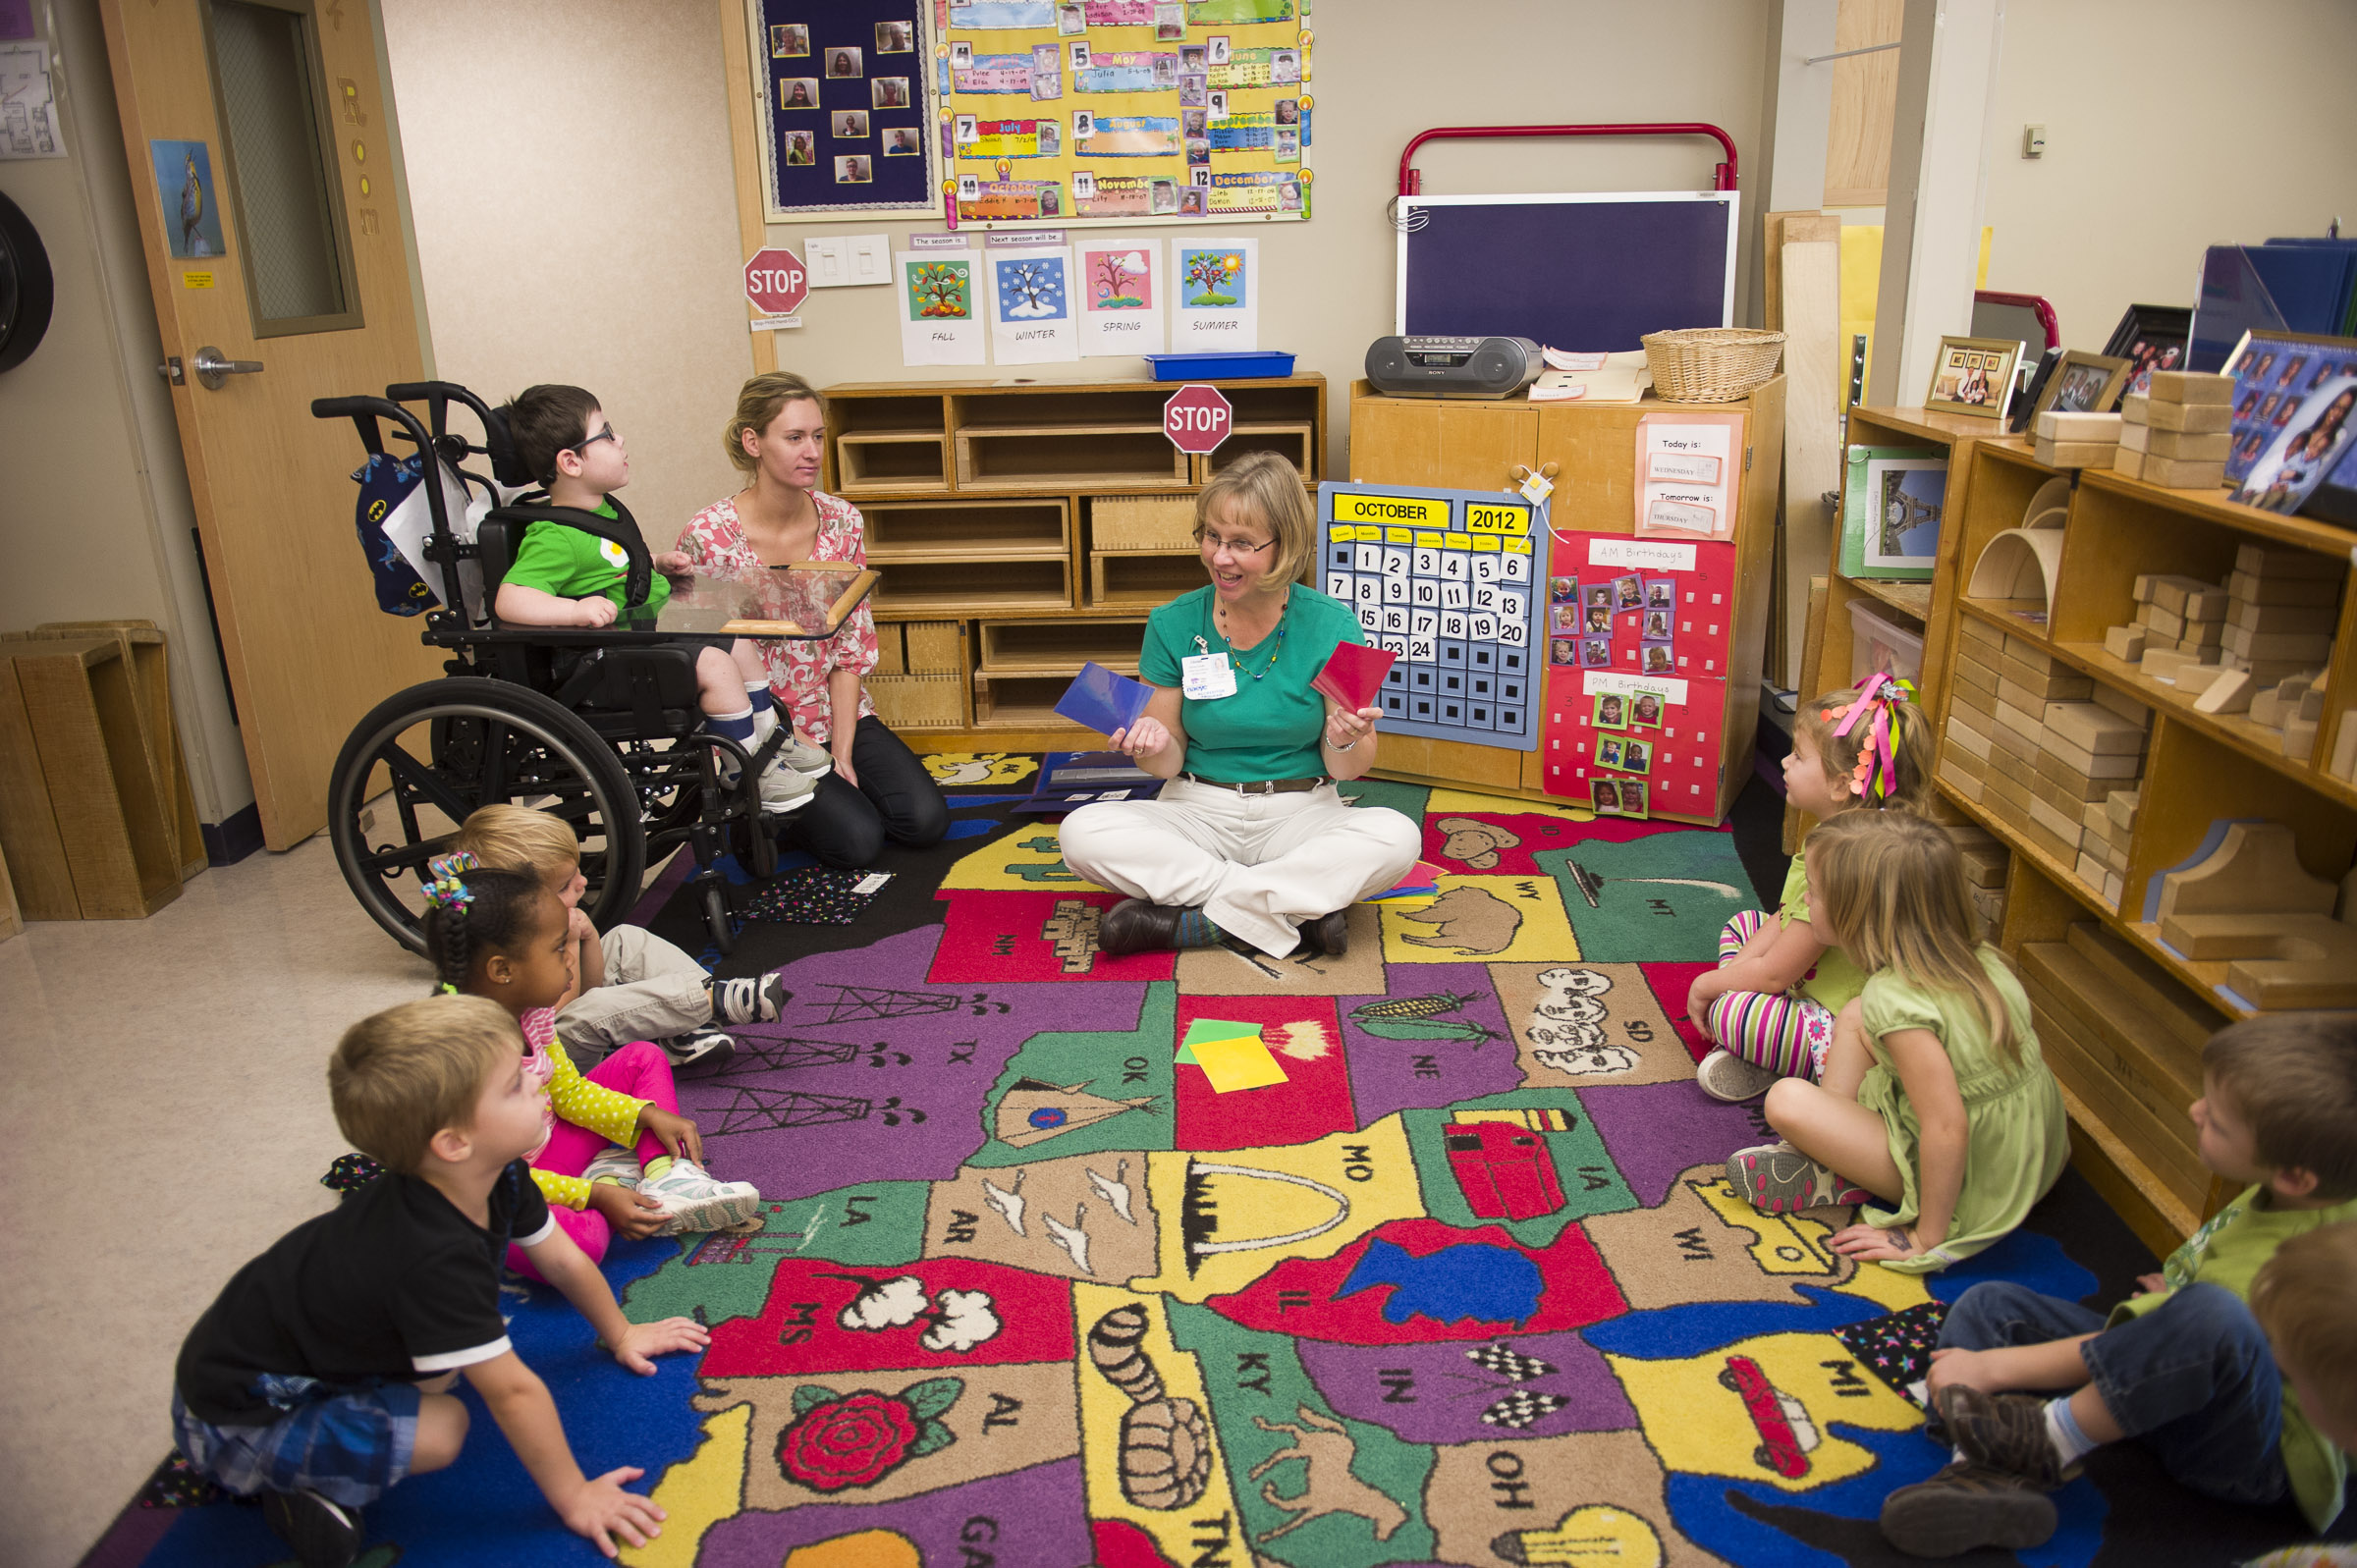 Child Development Scholar Suggests Strategies To Build